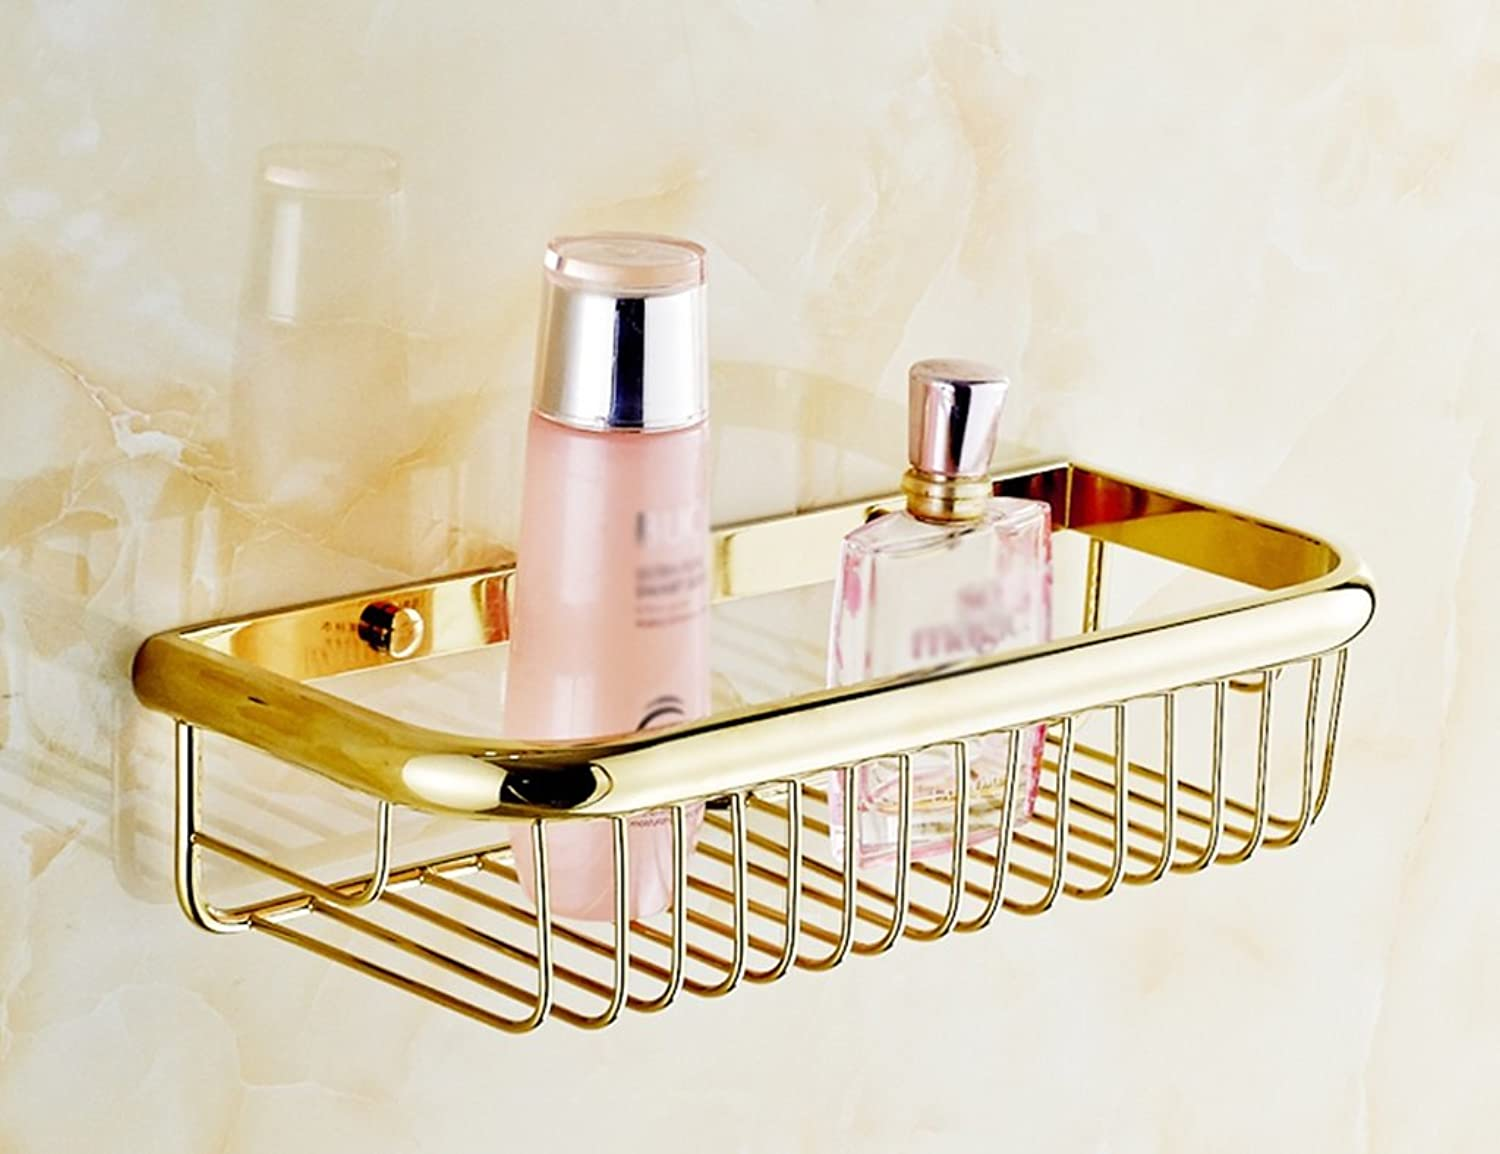 Copper Basket Shelf Single Layer Thickening Bathroom Shelf Clean Storage Rack (color   gold-Plated)